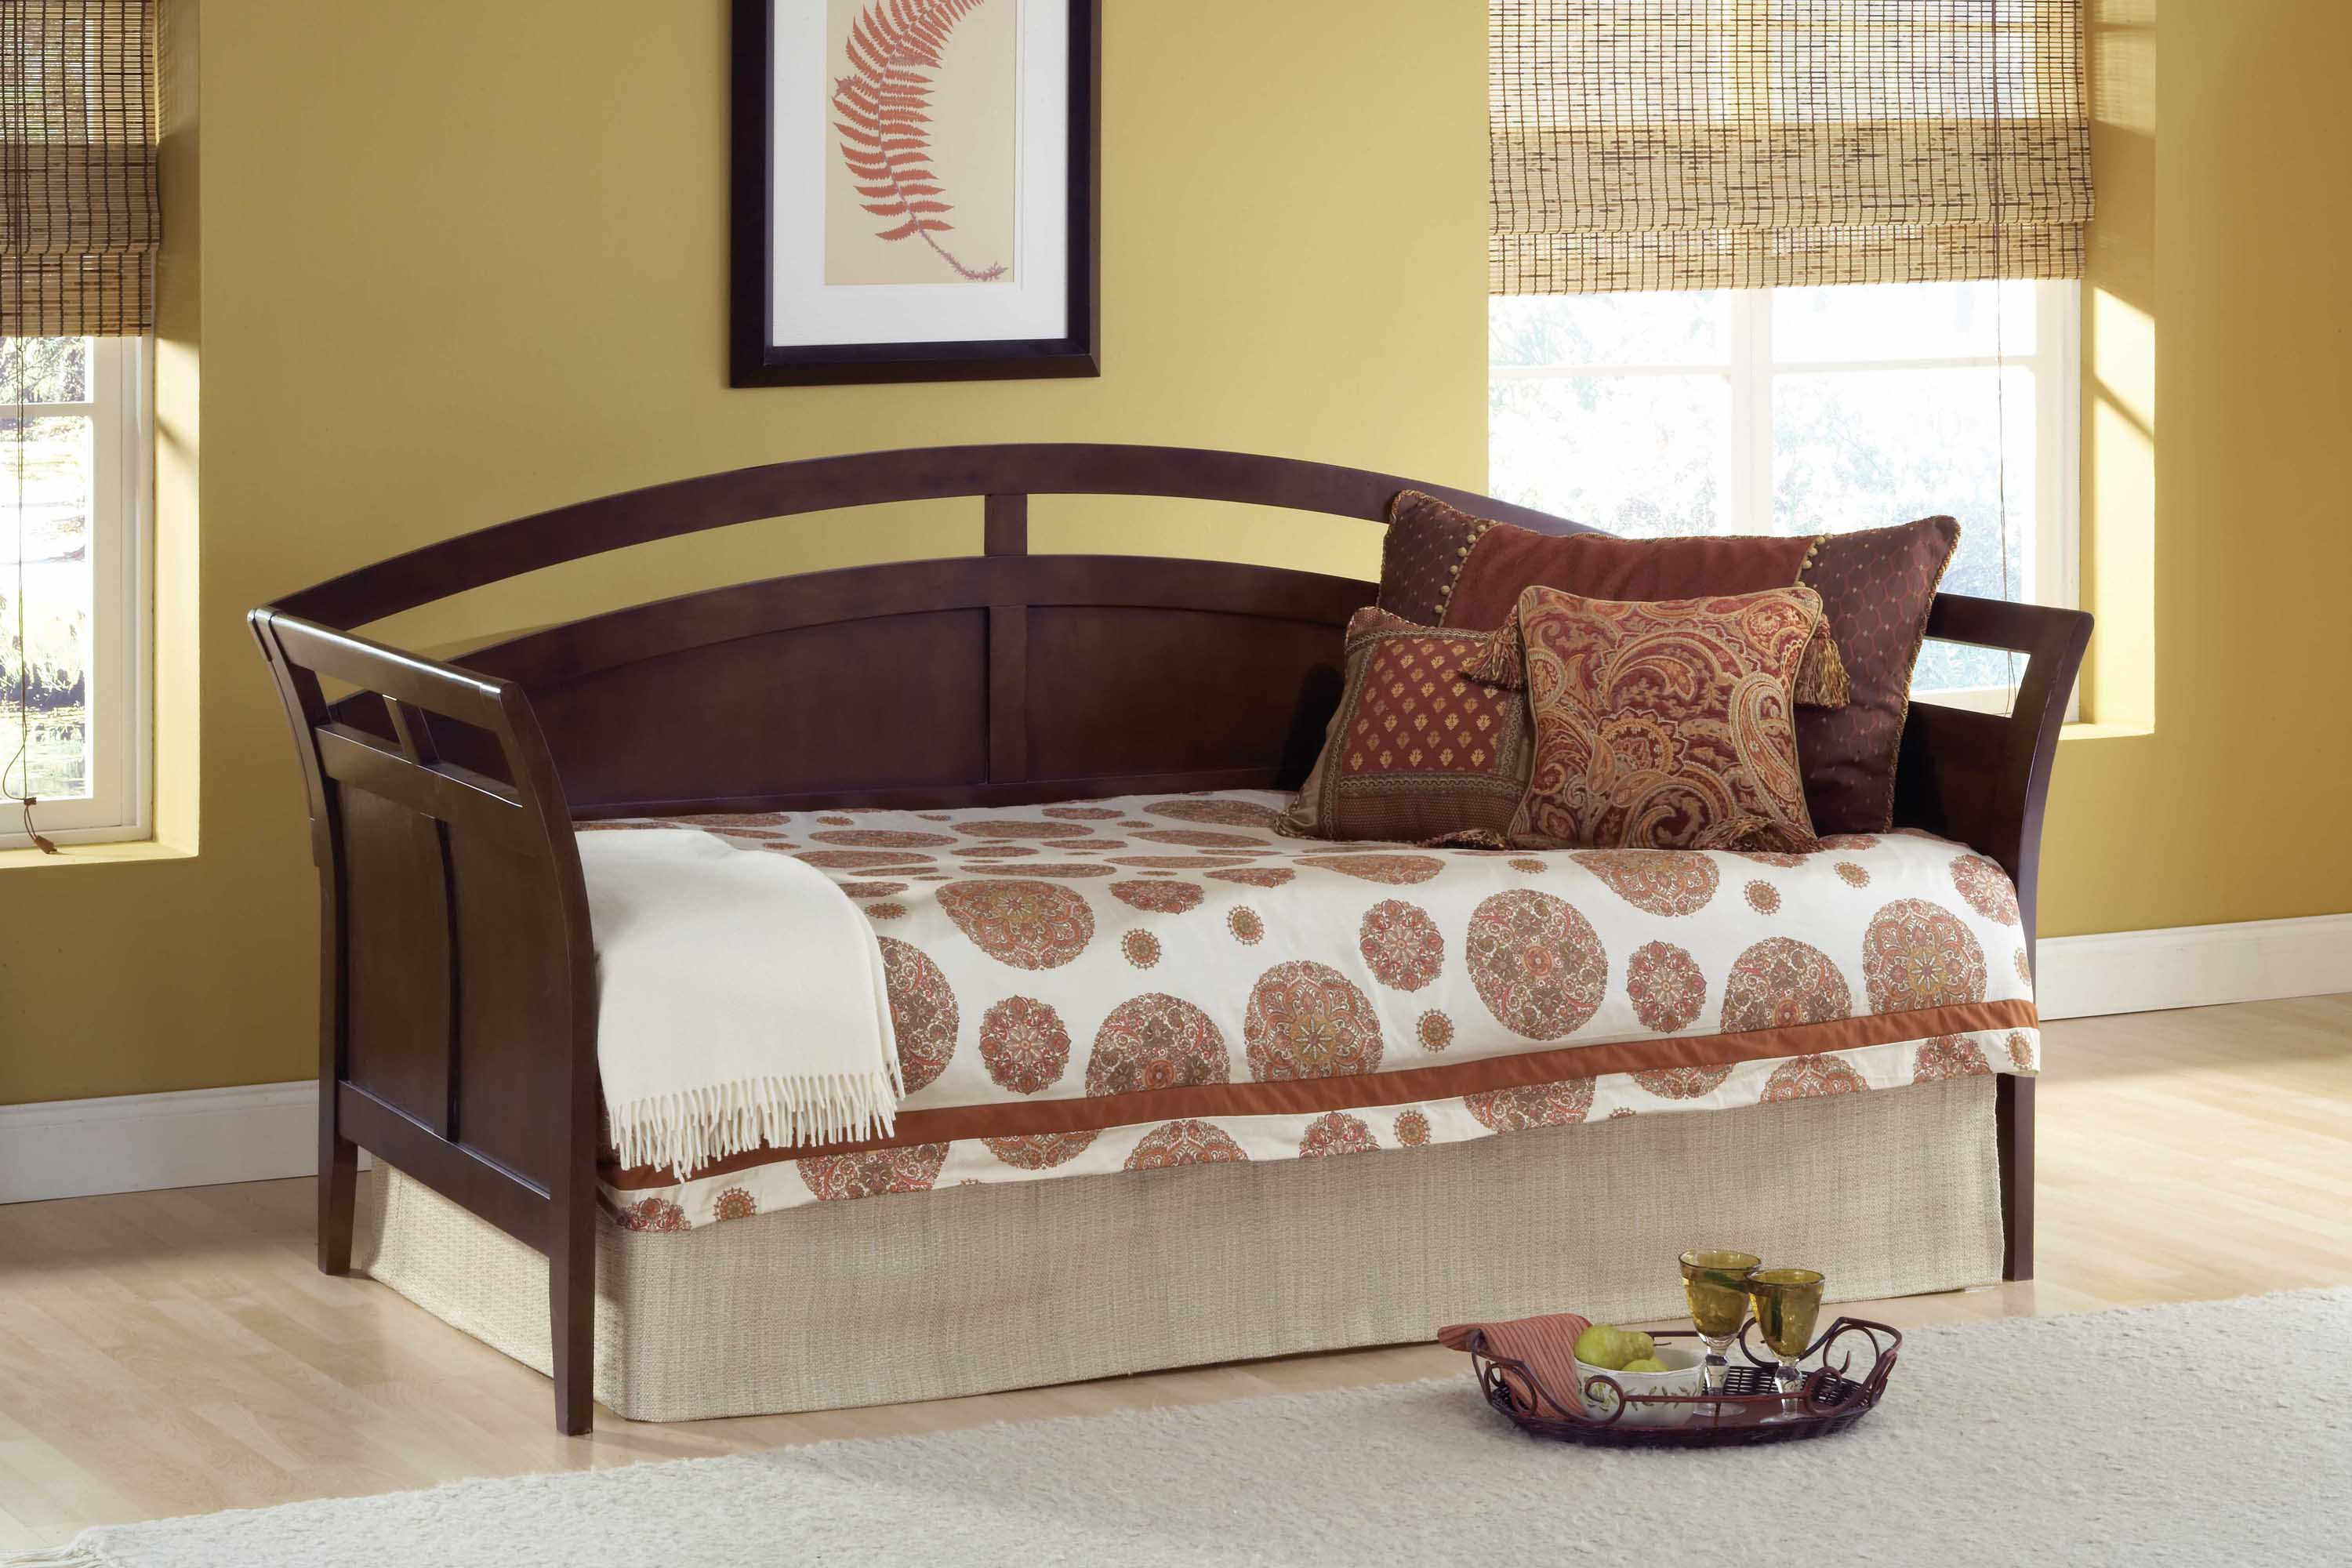 Inspiring Full Size Daybed For Home Furniture Ideas With Full Size Daybed With Trundle And Full Size Daybed Frame